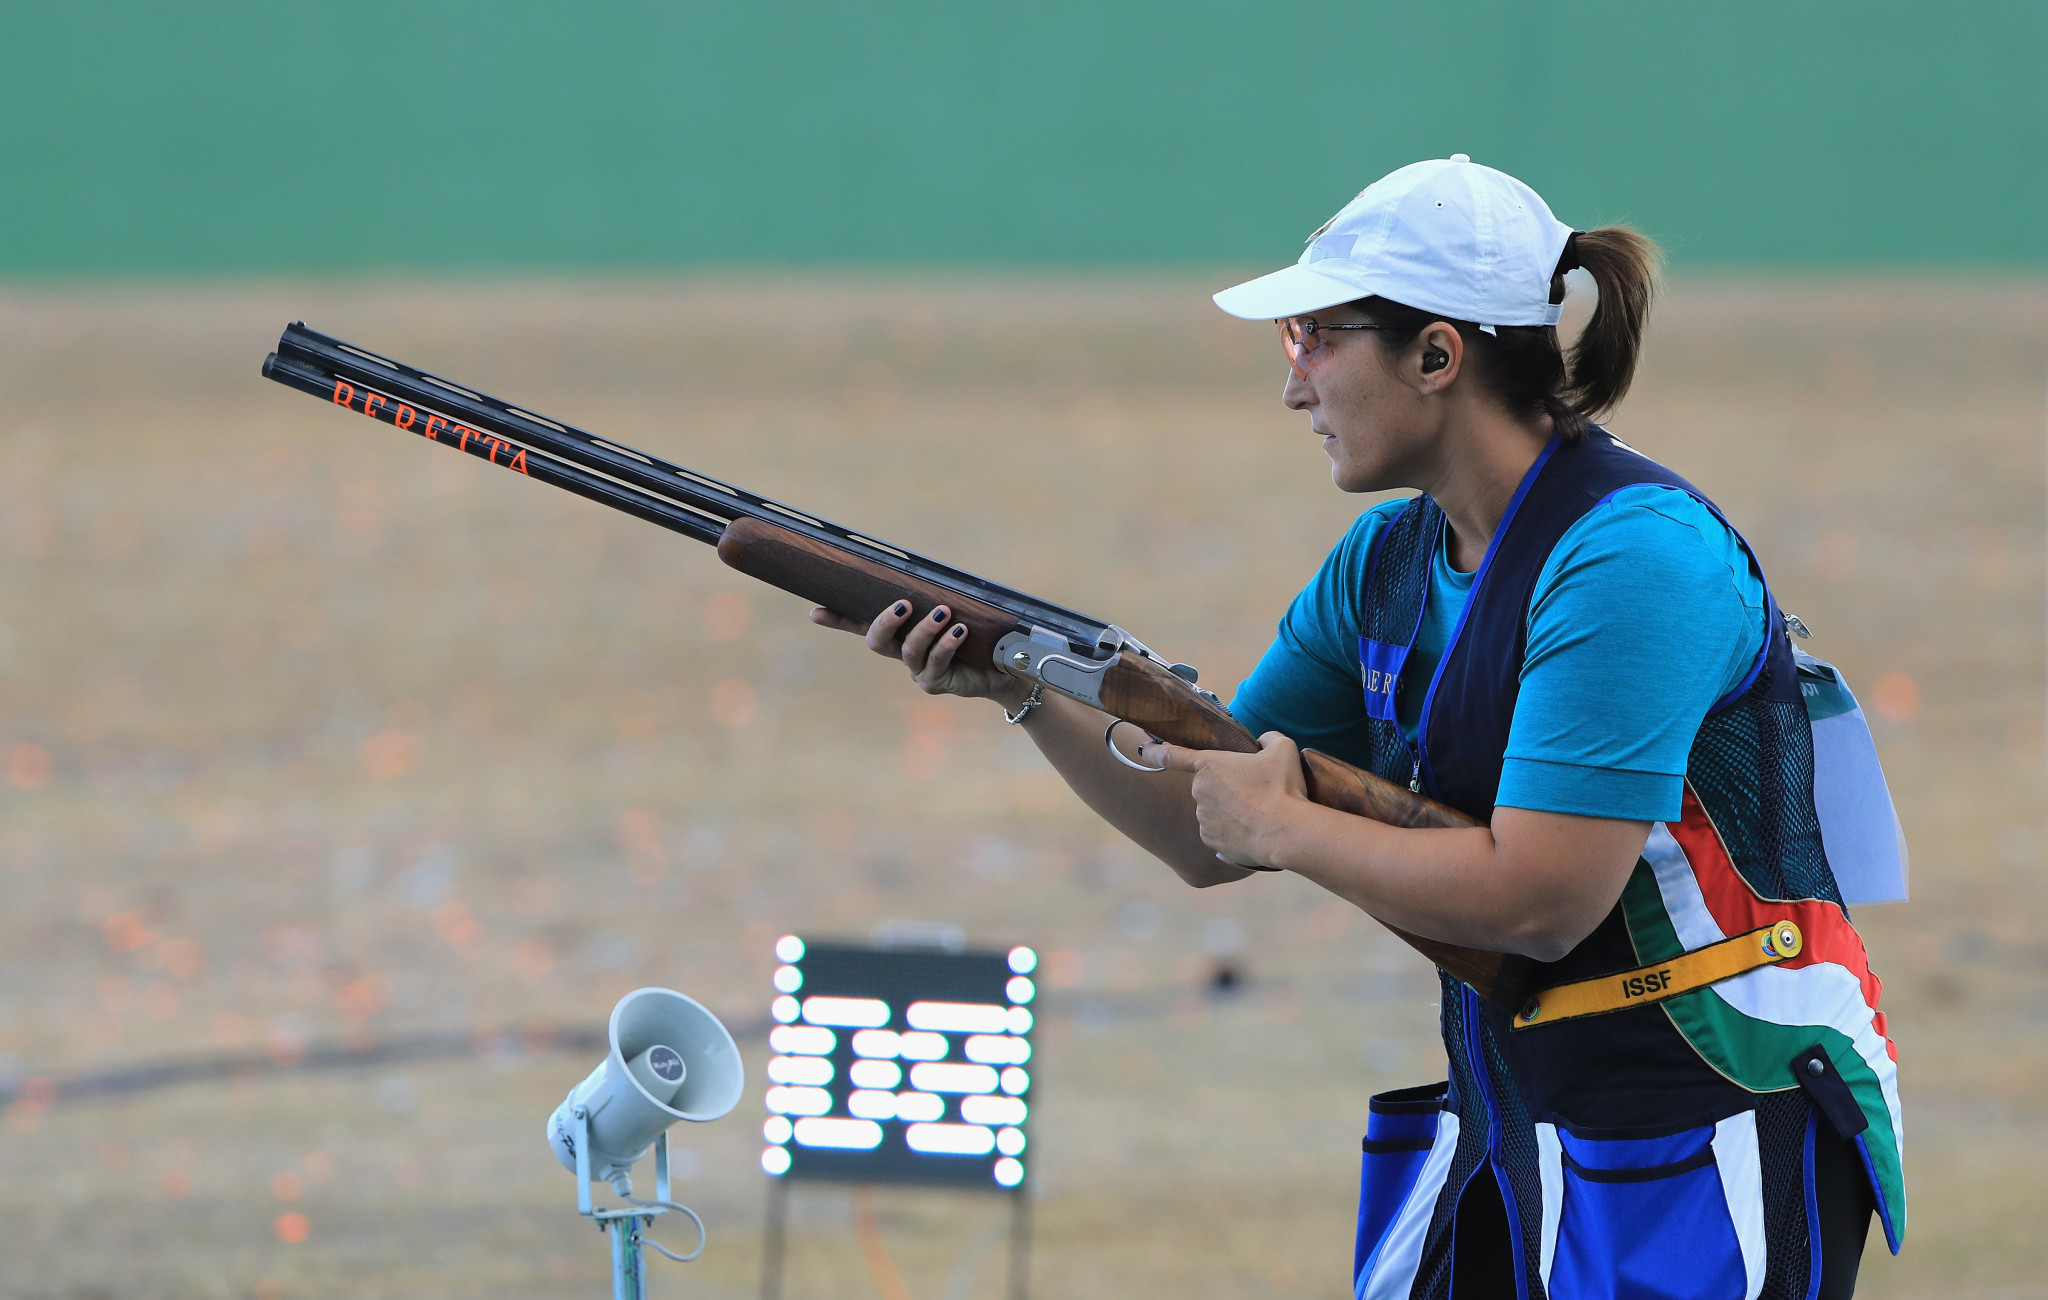 Cainero and Rossetti win skeet titles at European Shooting Championships in Osijek